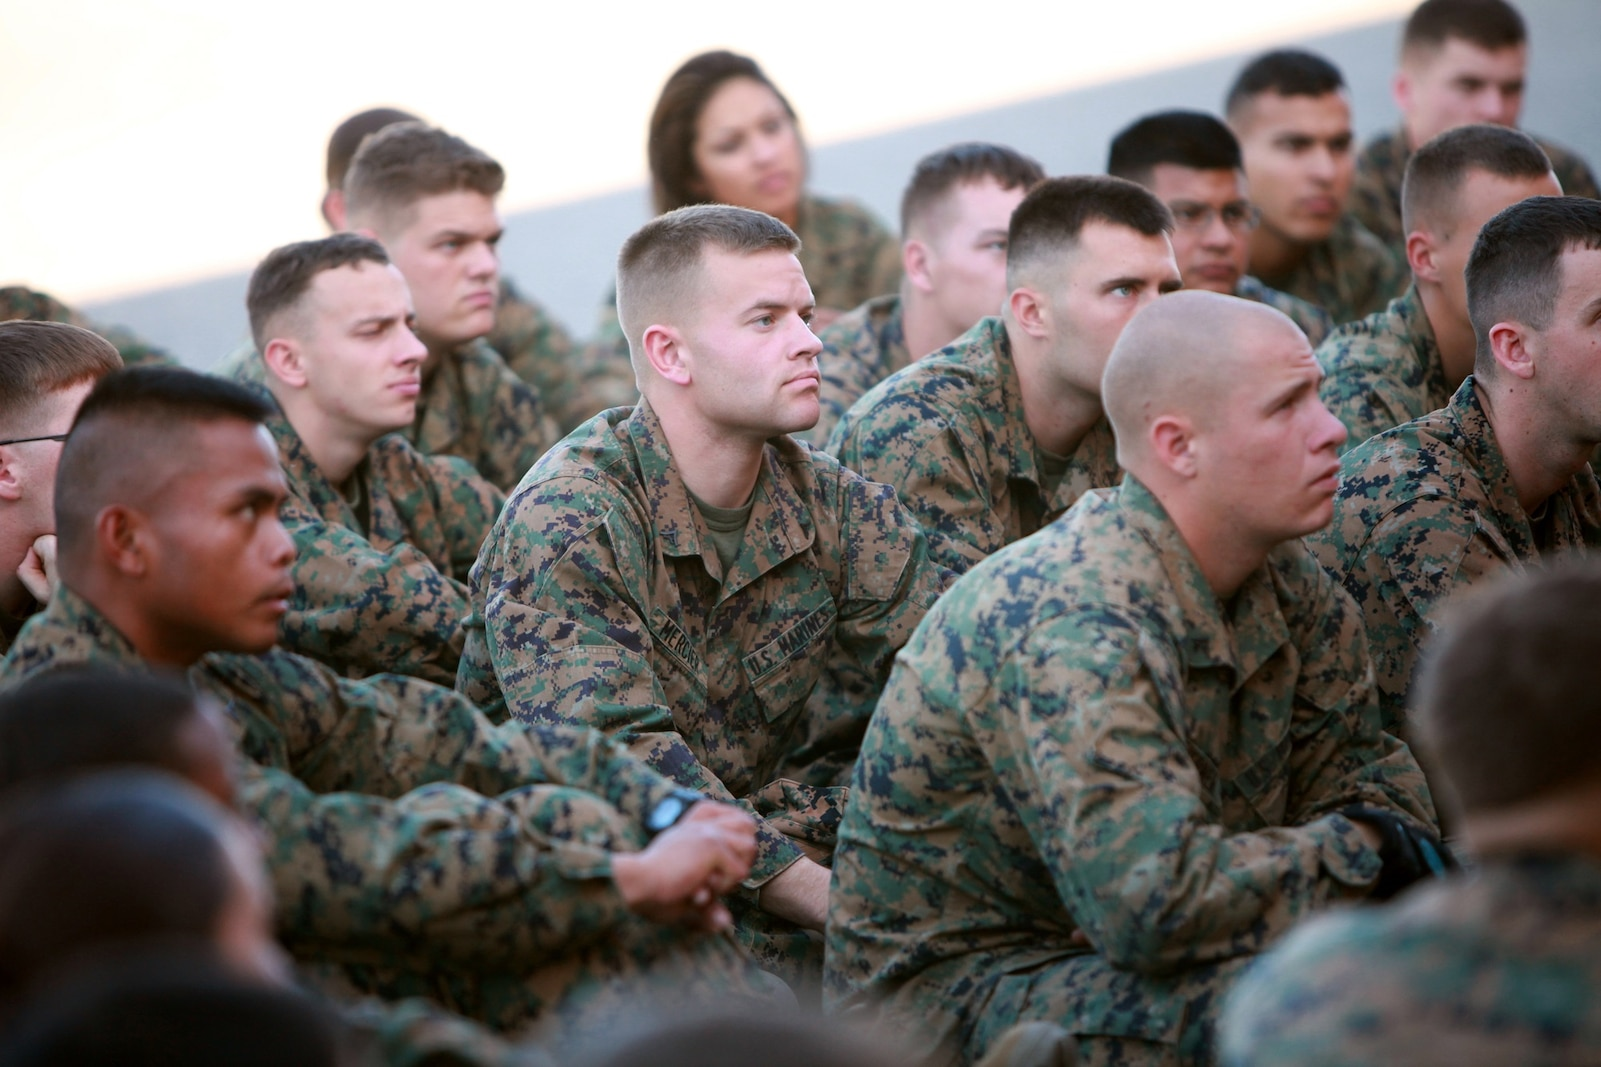 Junior Marines with General Support Motor Transport, Combat Logistics Regiment 1, 1st Marine Logistics Group, listen as Sgt. Maj. Juan Diaz, seargeant major of CLR-1, 1st MLG, gives a brief at the GSMT lot at Camp Pendleton, Calif., March 8. Since he assumed his post as sergeant major of CRL-1, 1st MLG, here, Jan. 21, Diaz wasted no time making sure his Marines understand what he expects as it pertains to discipline, conduct, standards and morale.